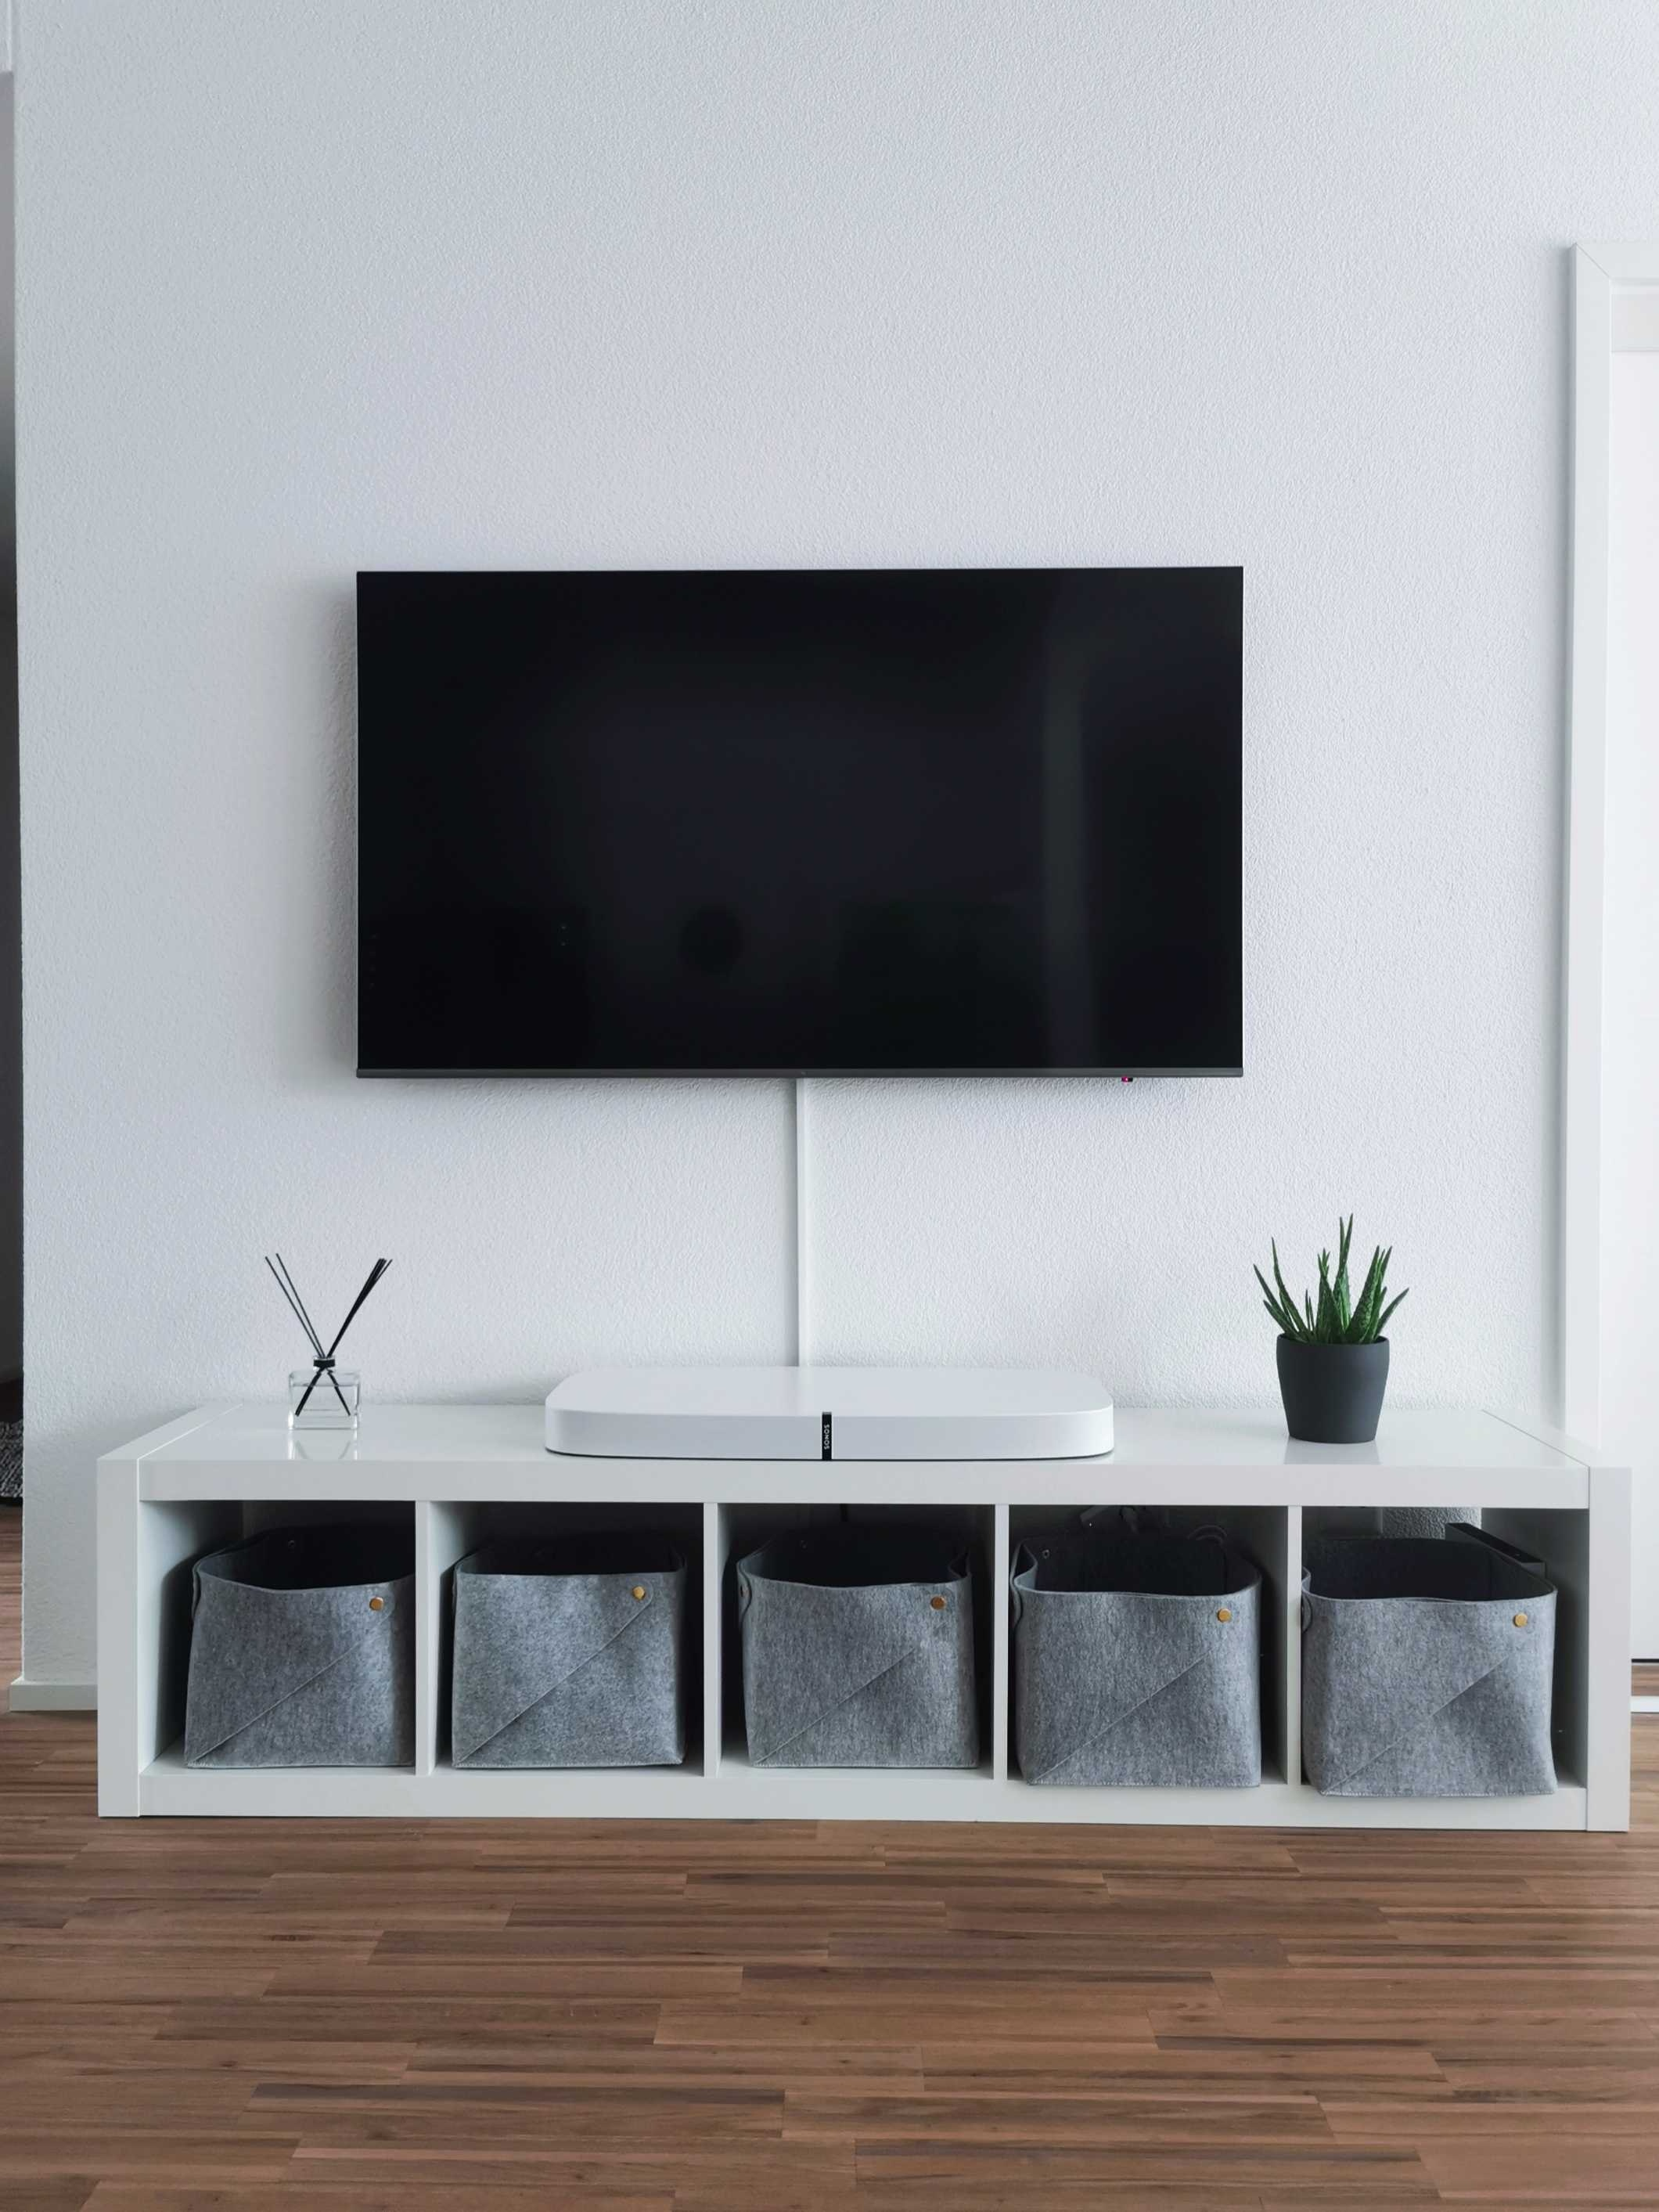 5 Reasons A Tv Mount Is Better Than A Tv Stand